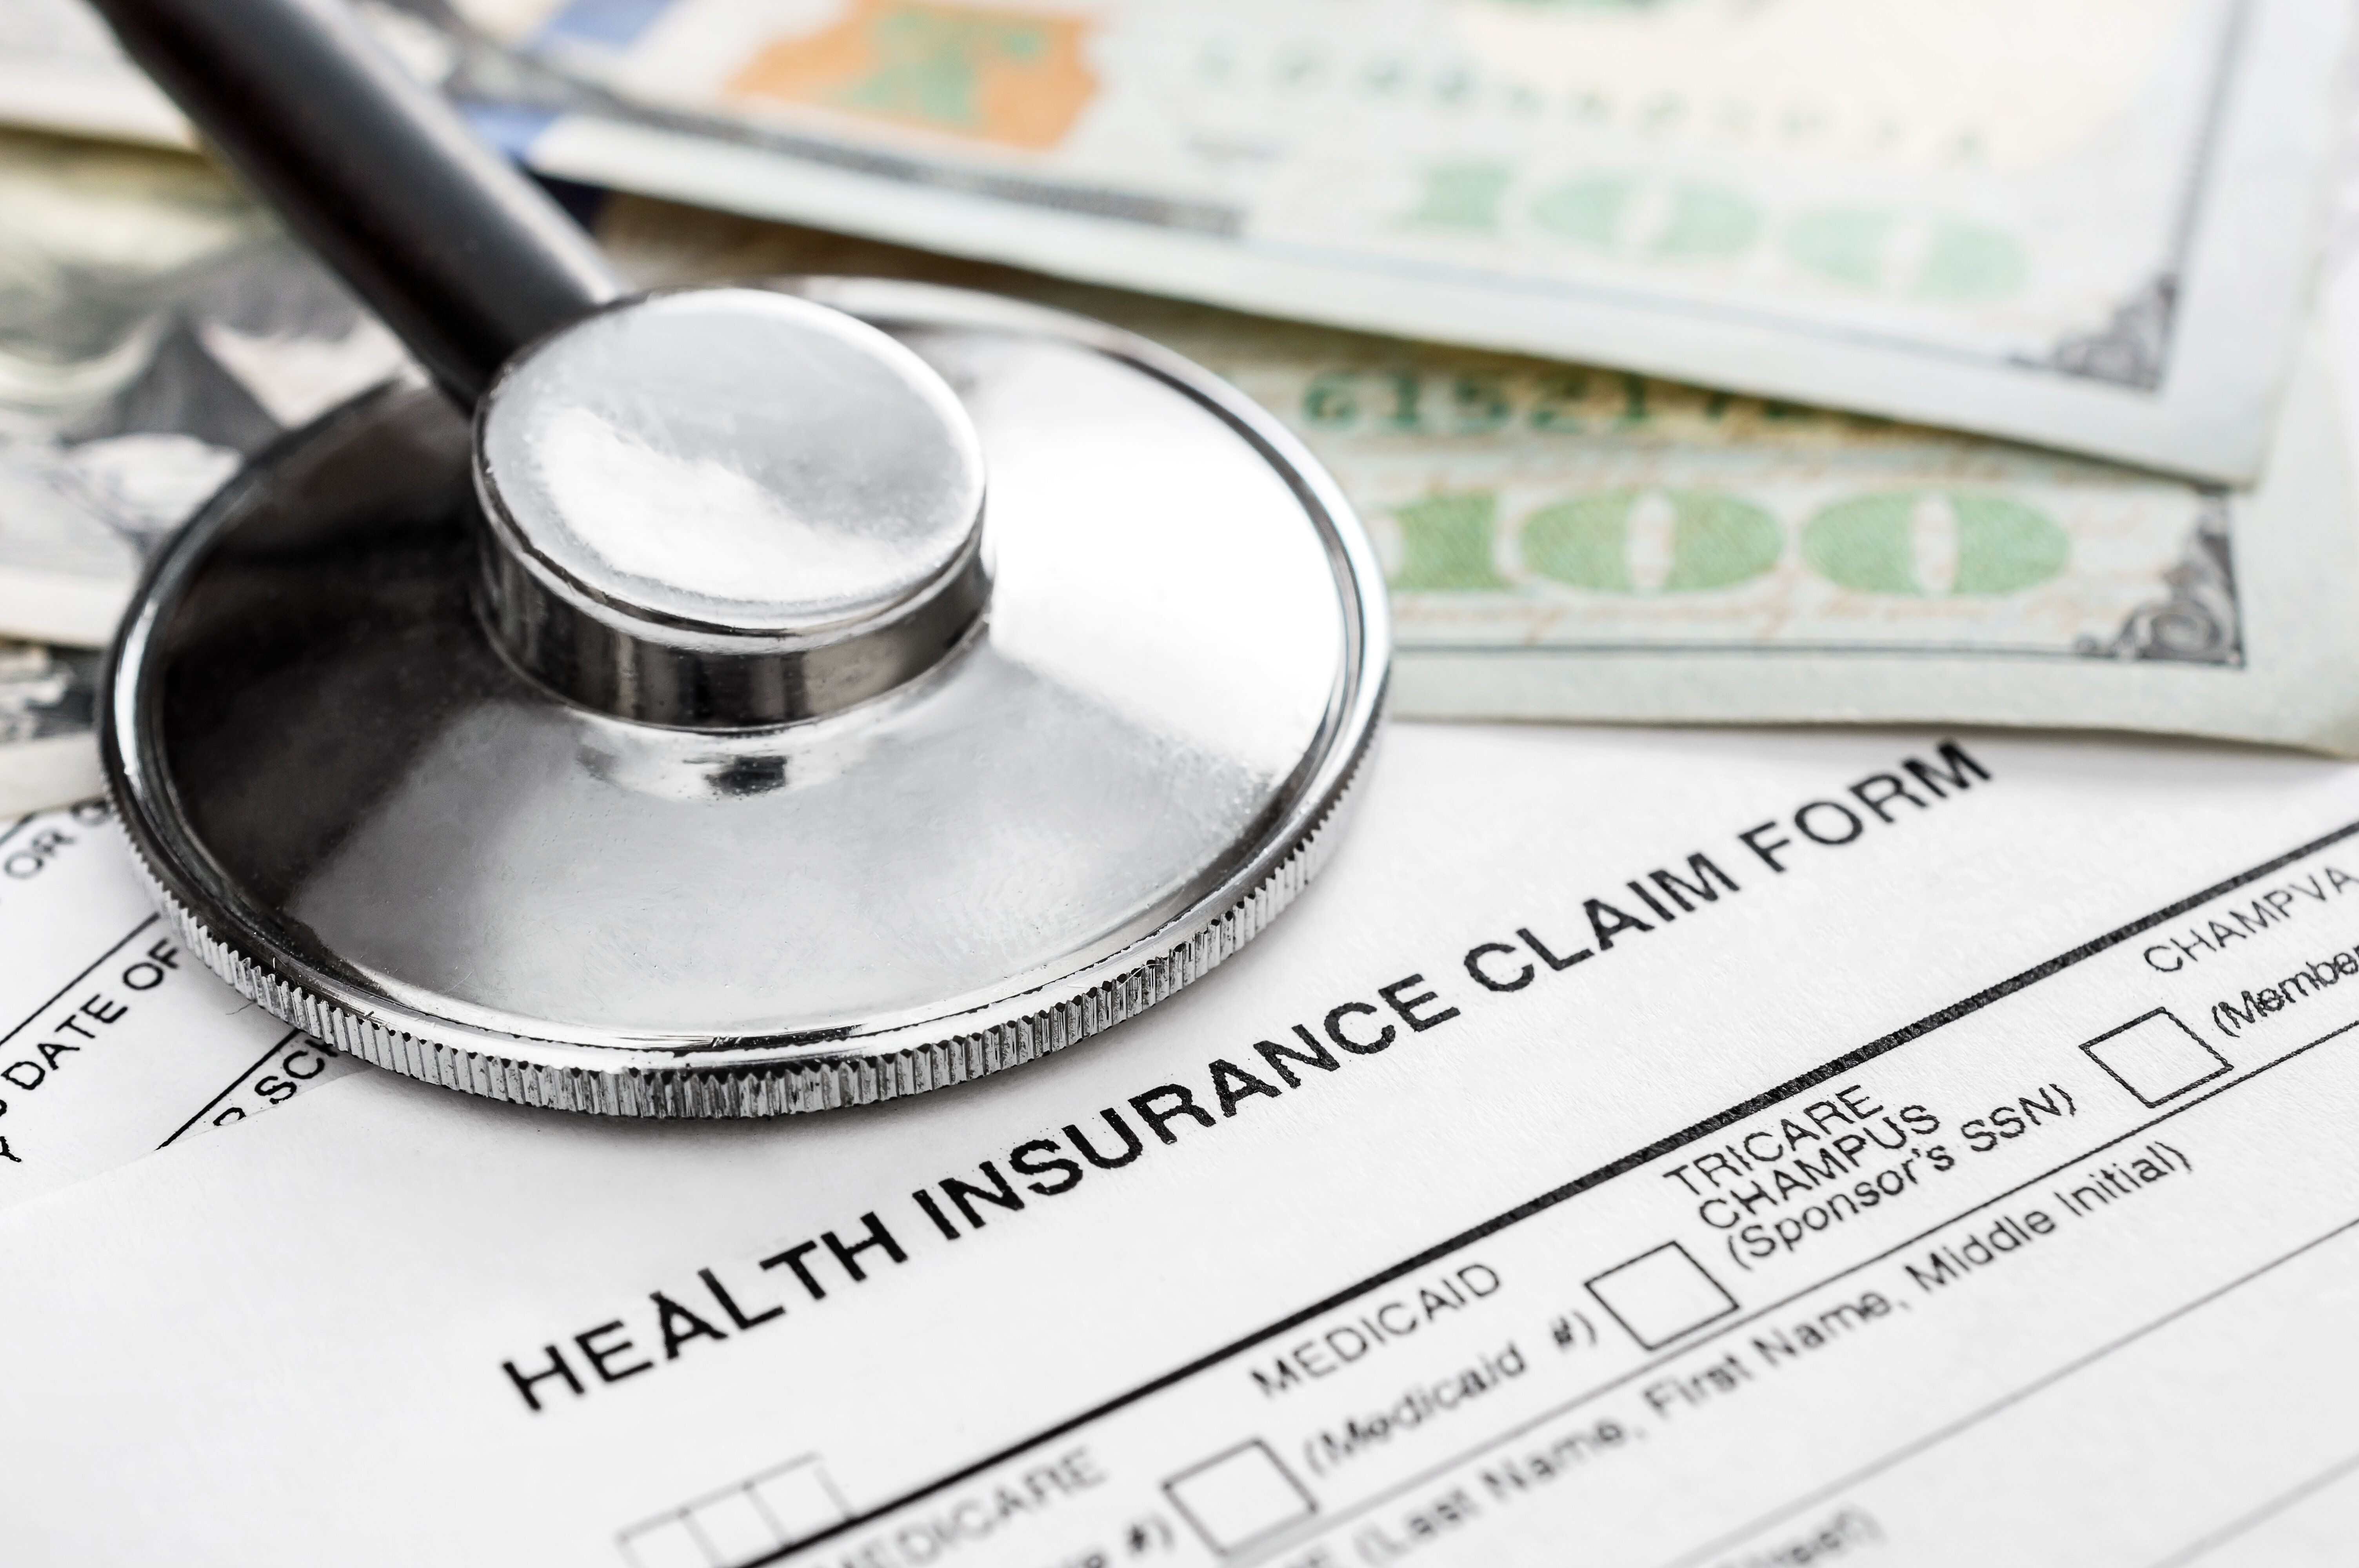 Stethoscope with money on health insurance claim form.